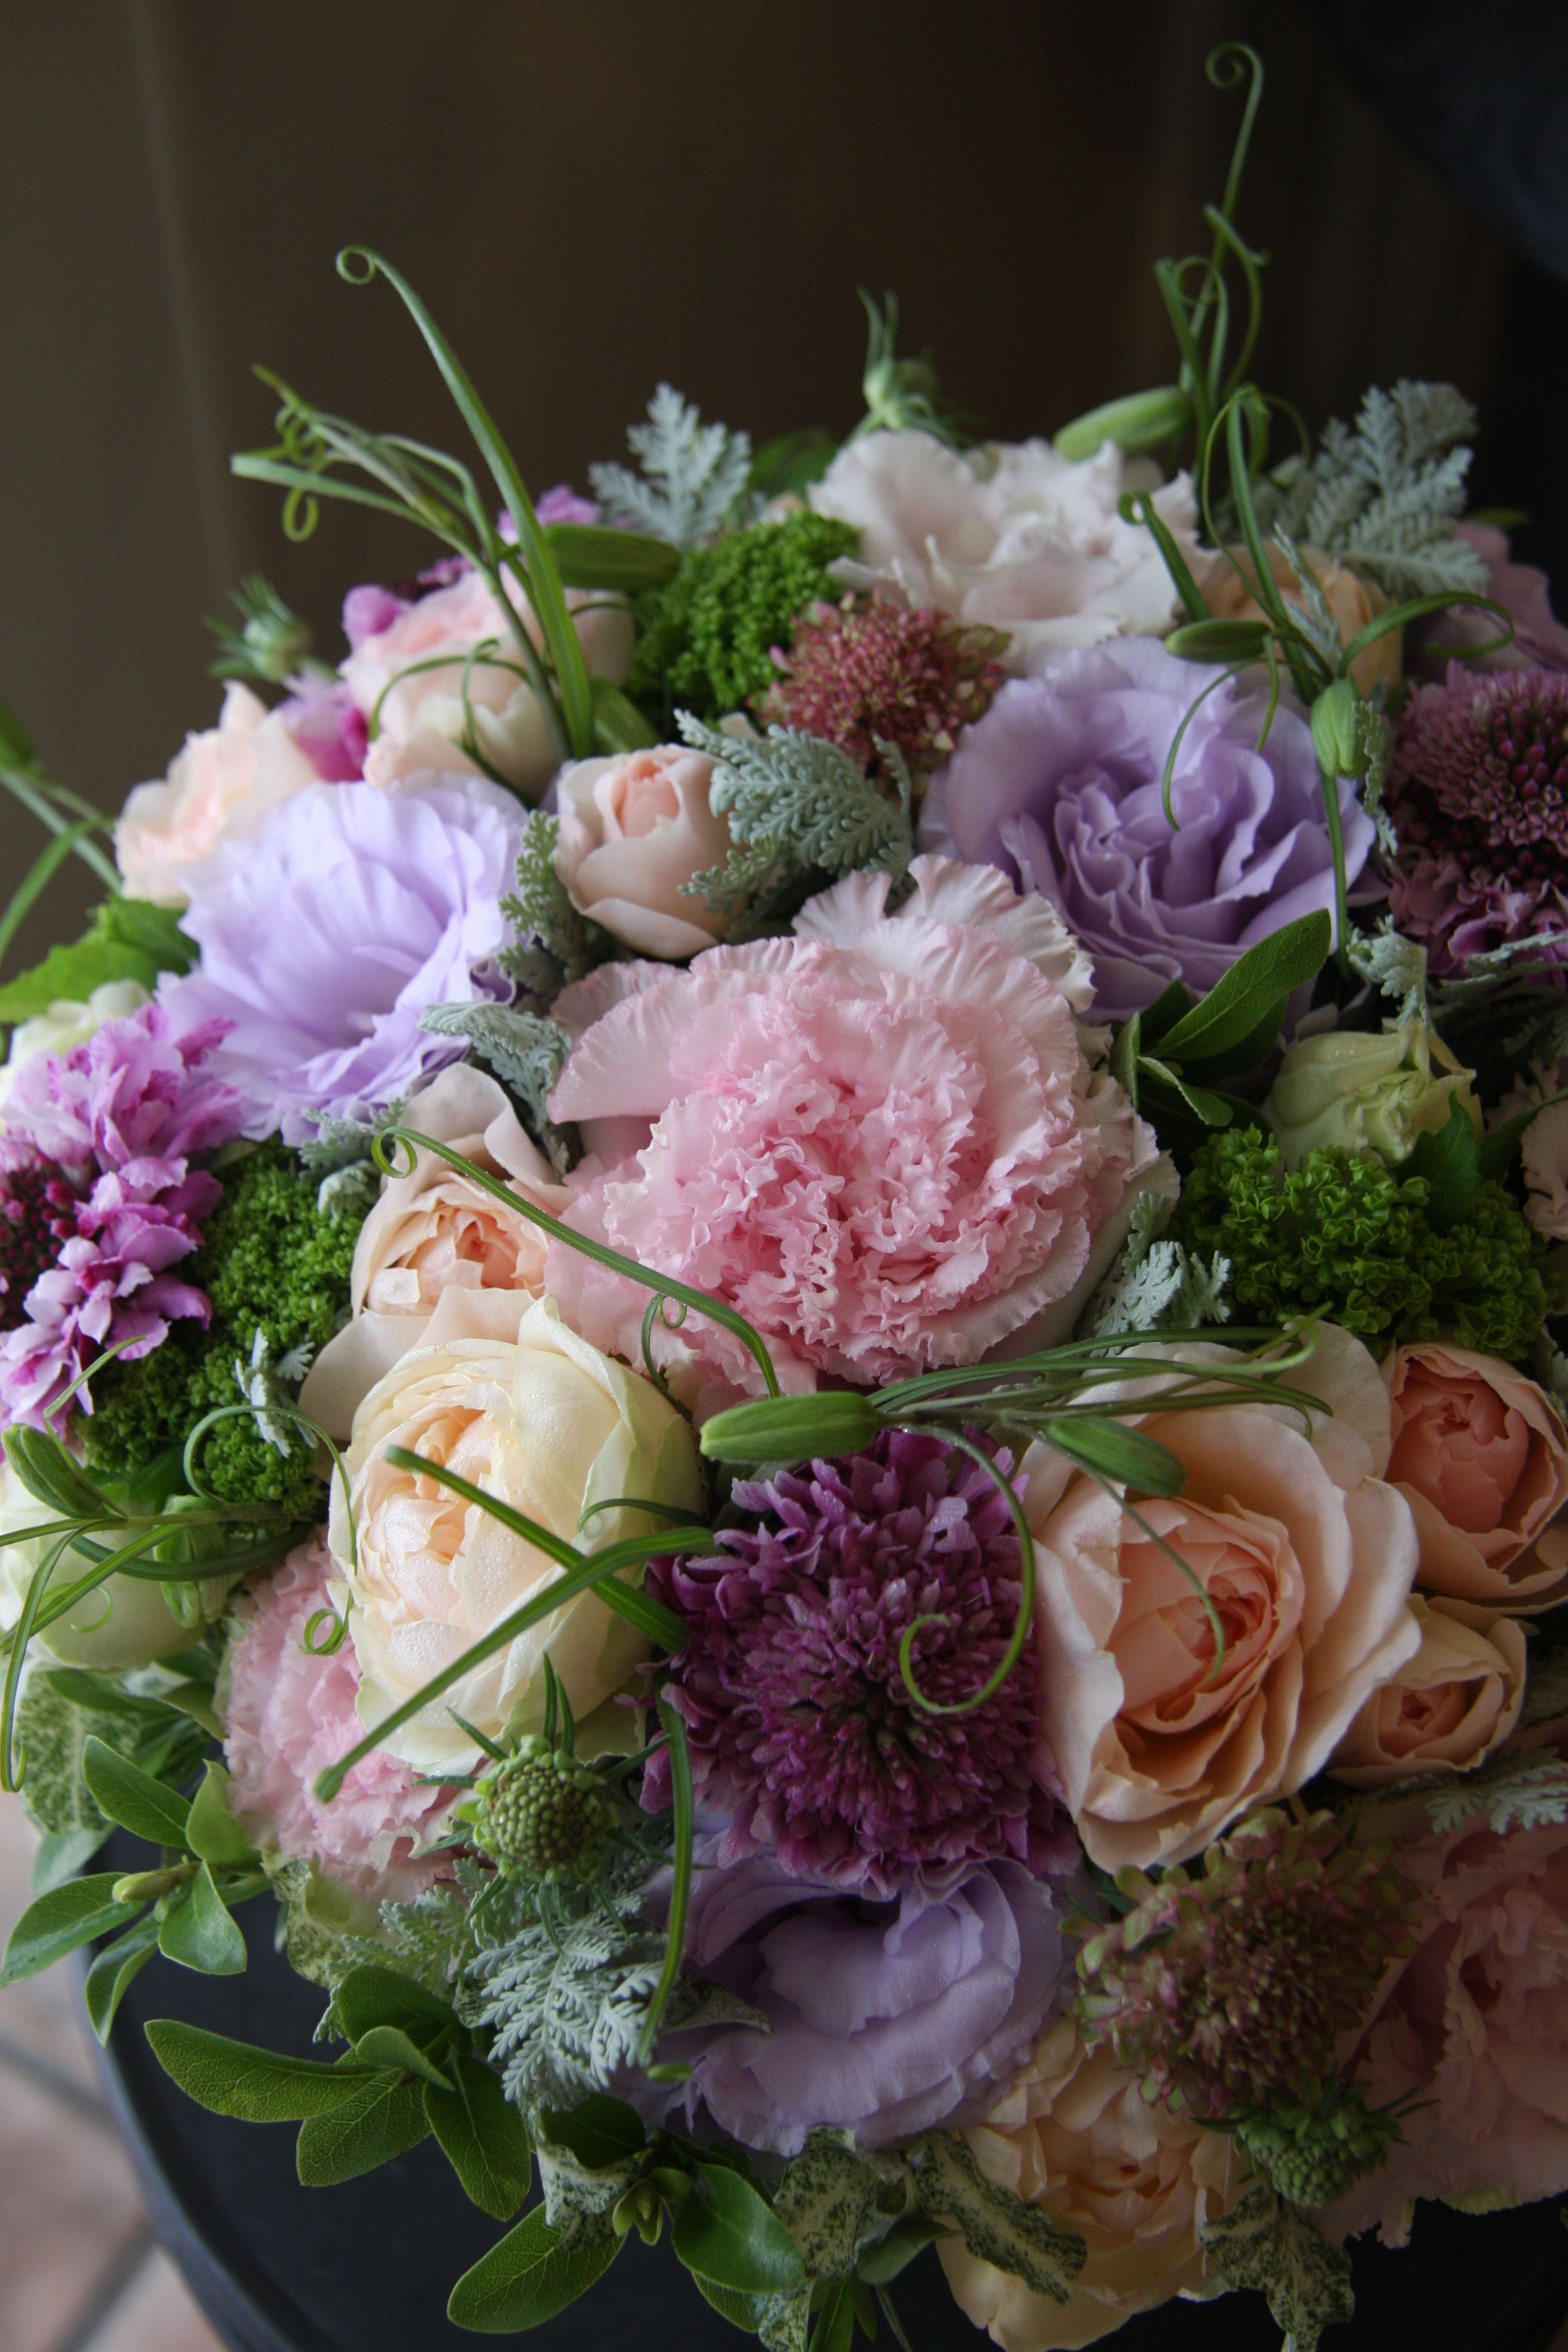 Pin by evie on i 3 flowers pinterest flowers flower flora flowers cut flowers flowers garden flower gardening prettiest flowers amazing flowers pretty flowers flower bouquets wedding bouquets izmirmasajfo Gallery